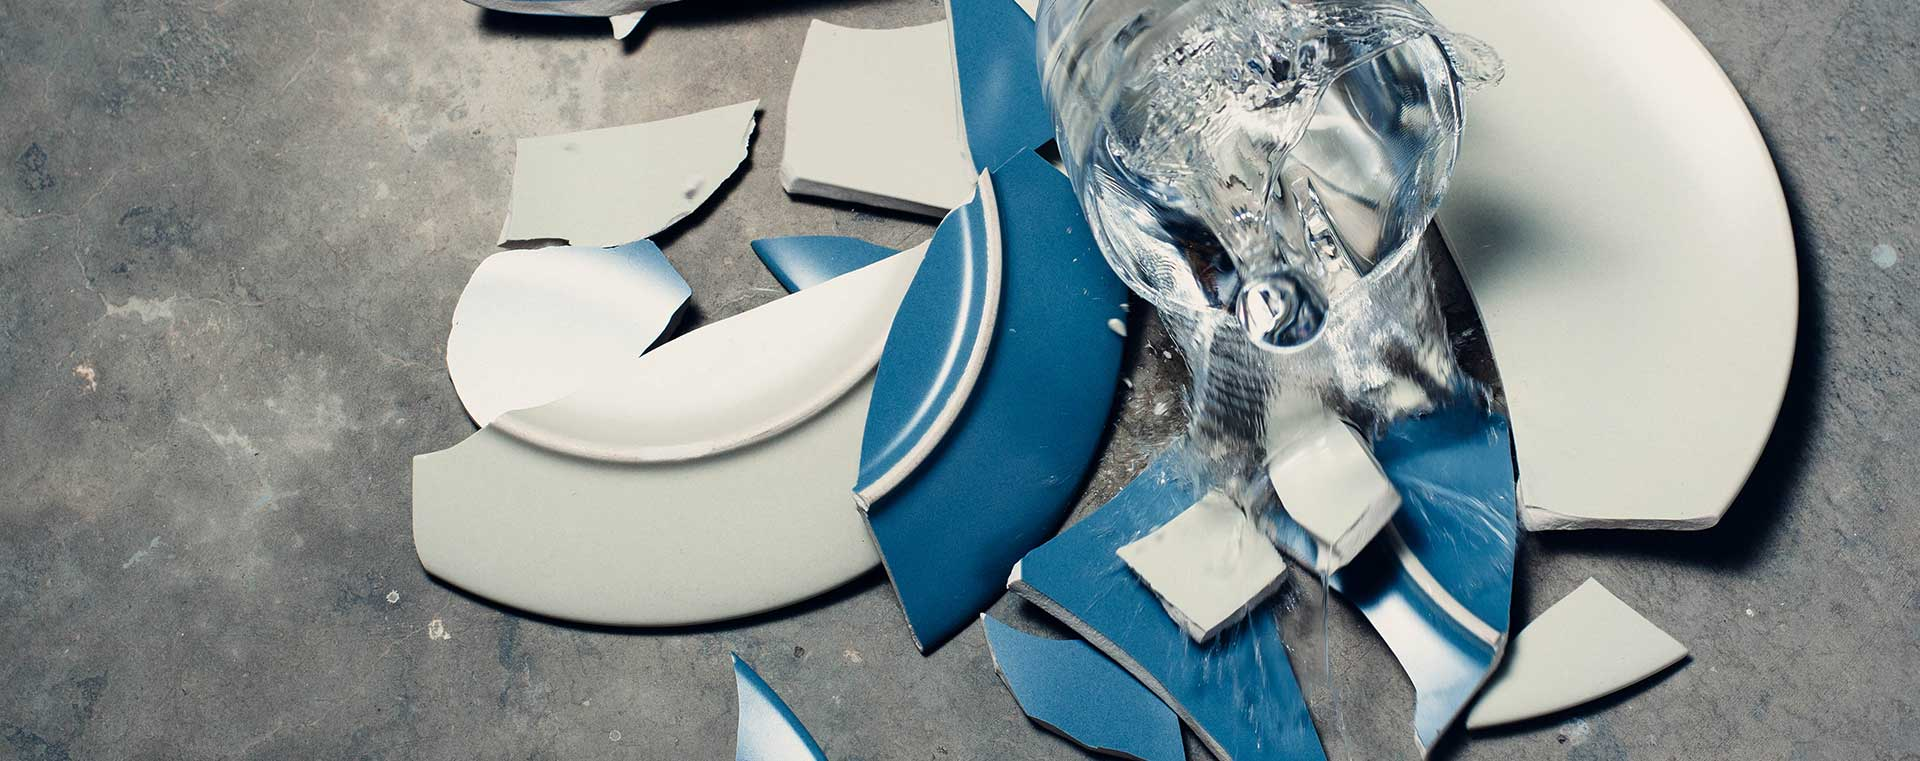 smashed-blue-plates-glass-water-concrete